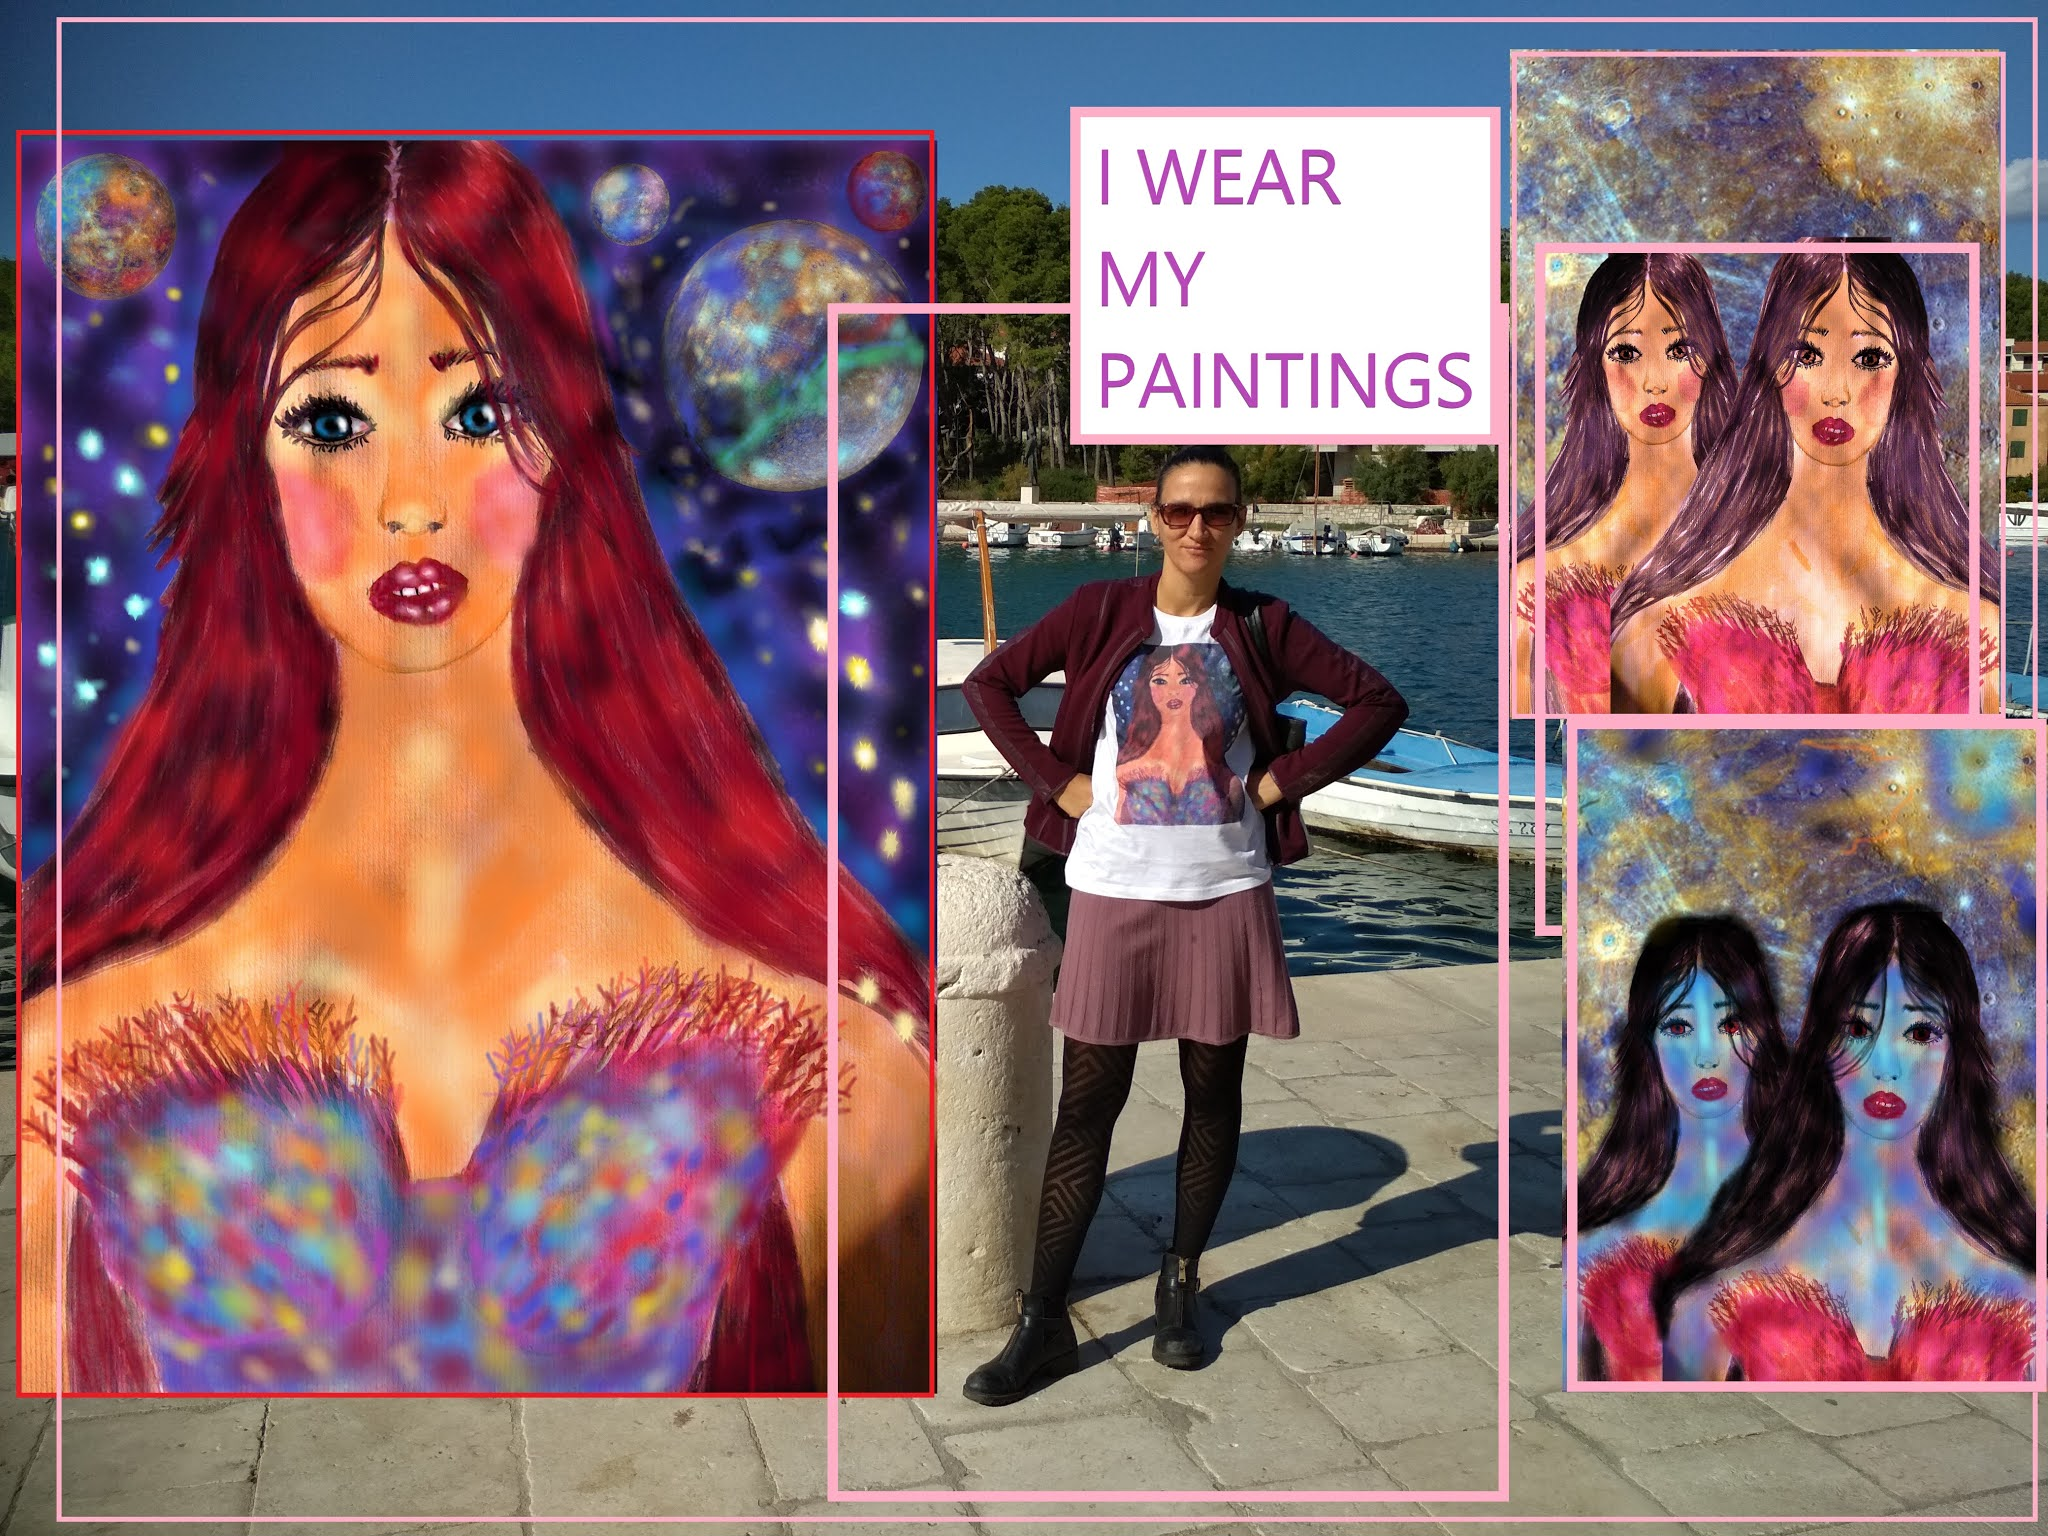 I WEAR MY PAINTINGS, STYLING A GRAPHIC TEE IN STARI GRAD